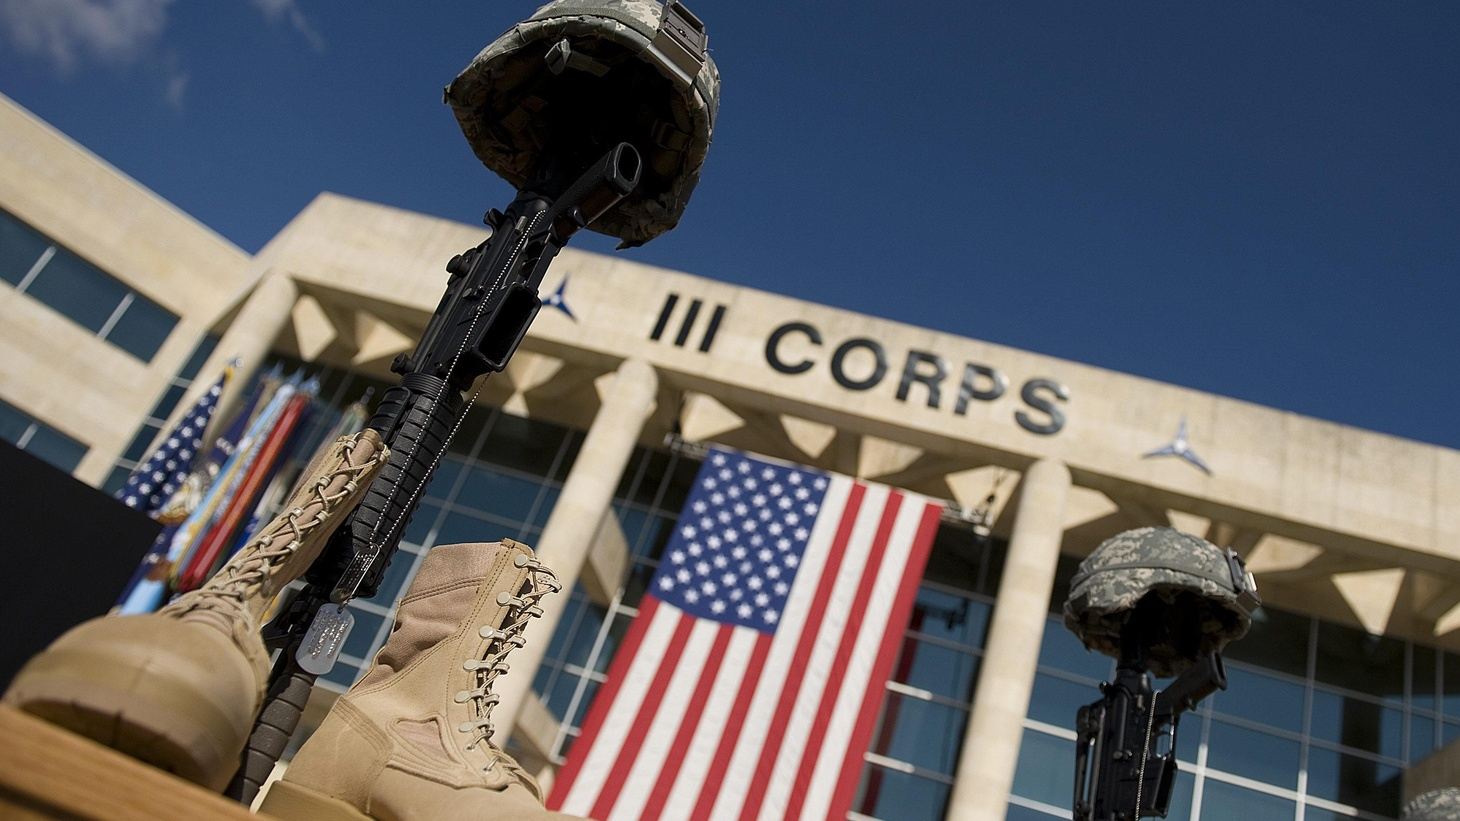 Twelve American soldiers and one civilian were gunned down last Thursday at Fort Hood, Texas.  Were they victims of terrorism?  Could the incident have been prevented?  What does it mean for military diversity in a world plagued by cultural and religious confrontations? Also, North and South Korean ships exchange fire, and nuclear disarmament produces nuclear power.